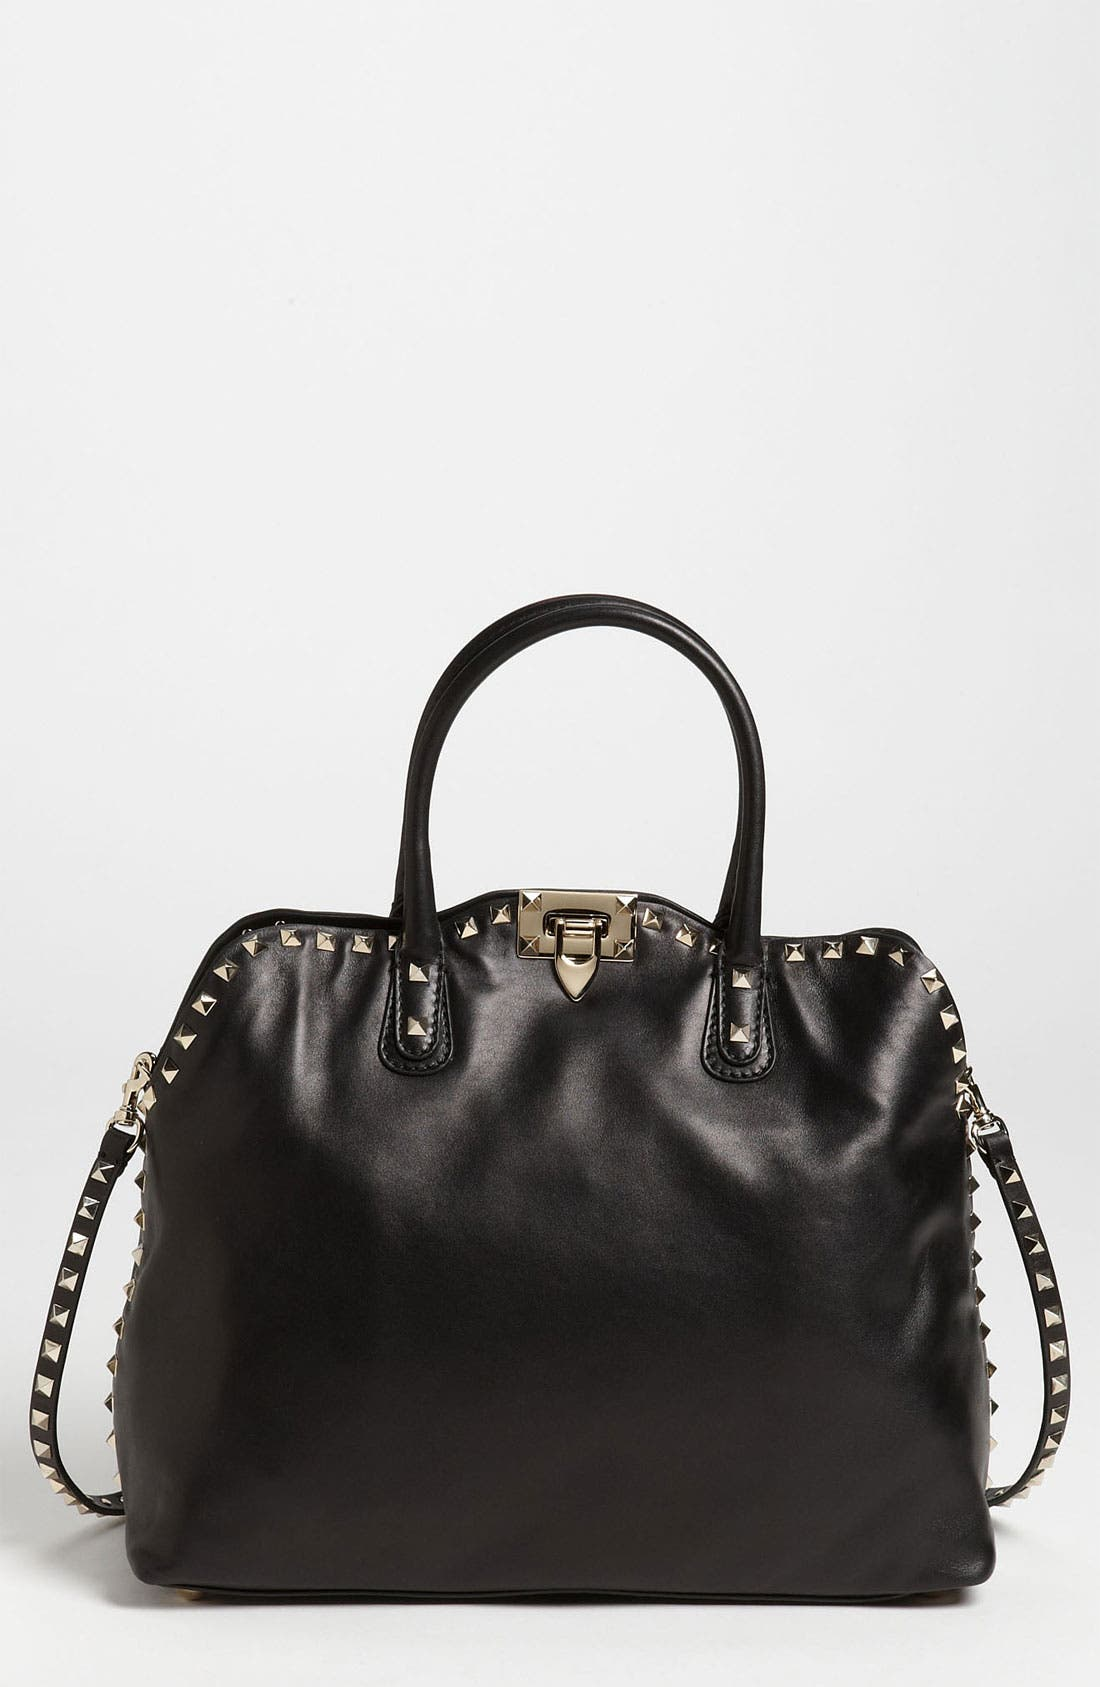 Alternate Image 1 Selected - Valentino 'Rockstud' Leather Dome Handbag